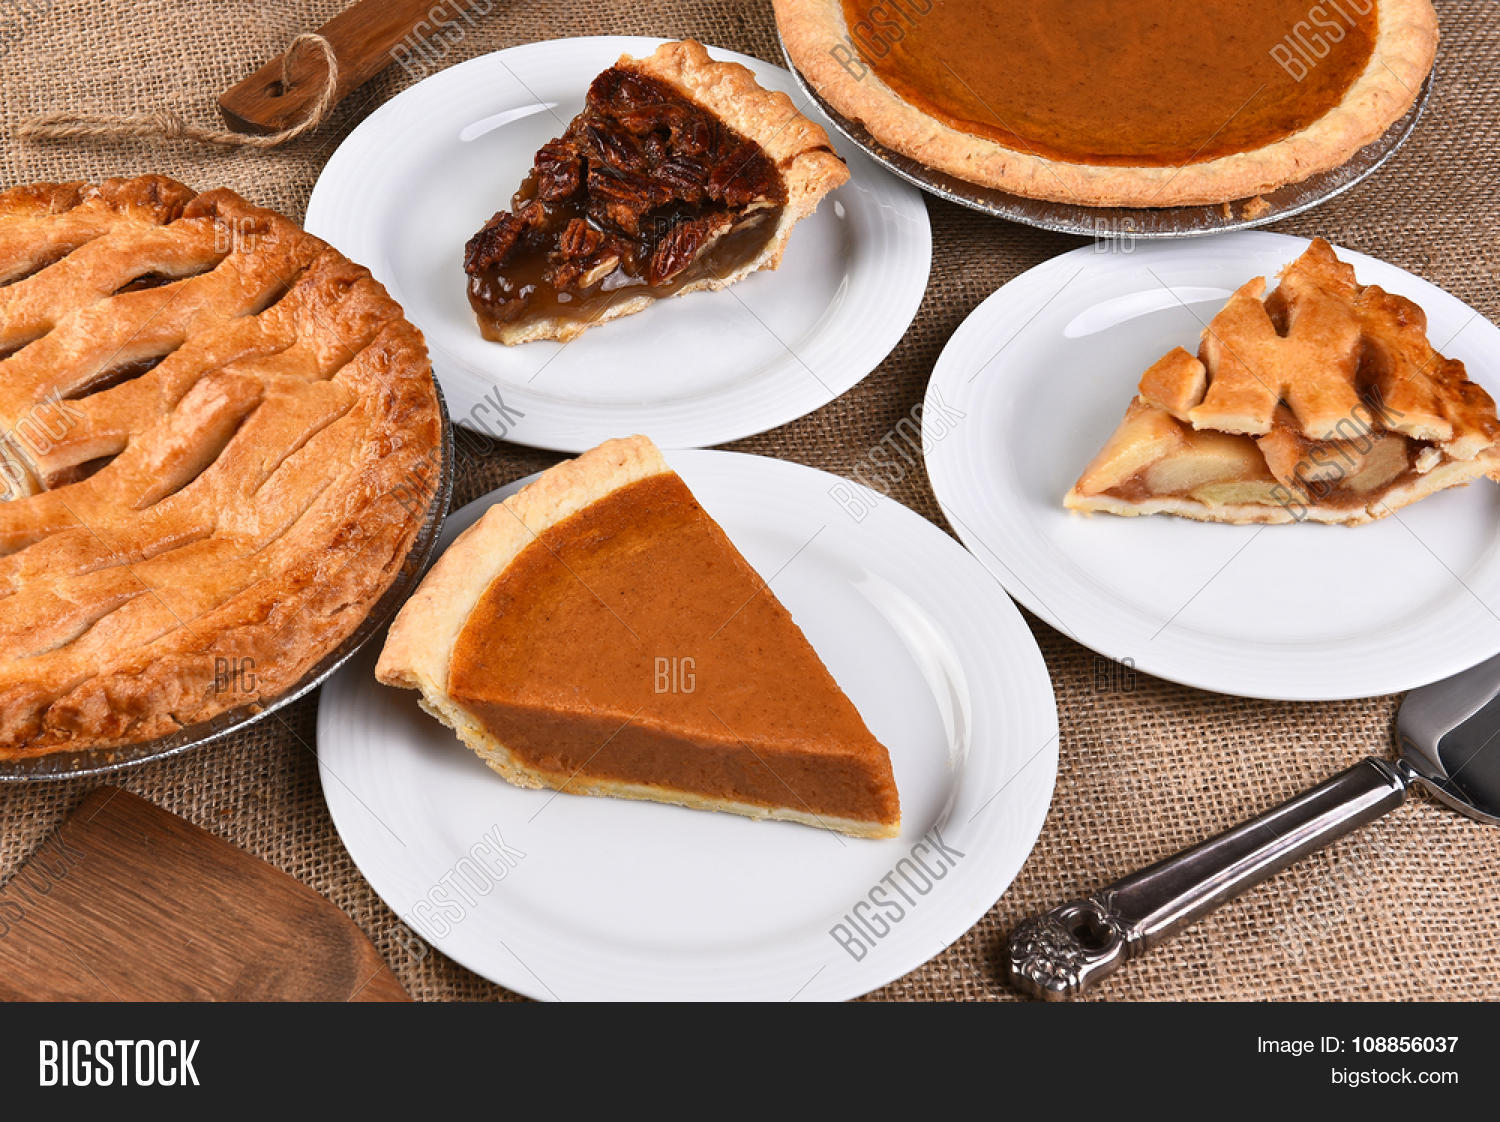 High angle view of whole pies and plates with slices. Traditional Thanksgiving desserts include & High Angle View Whole Pies Plates Image u0026 Photo | Bigstock